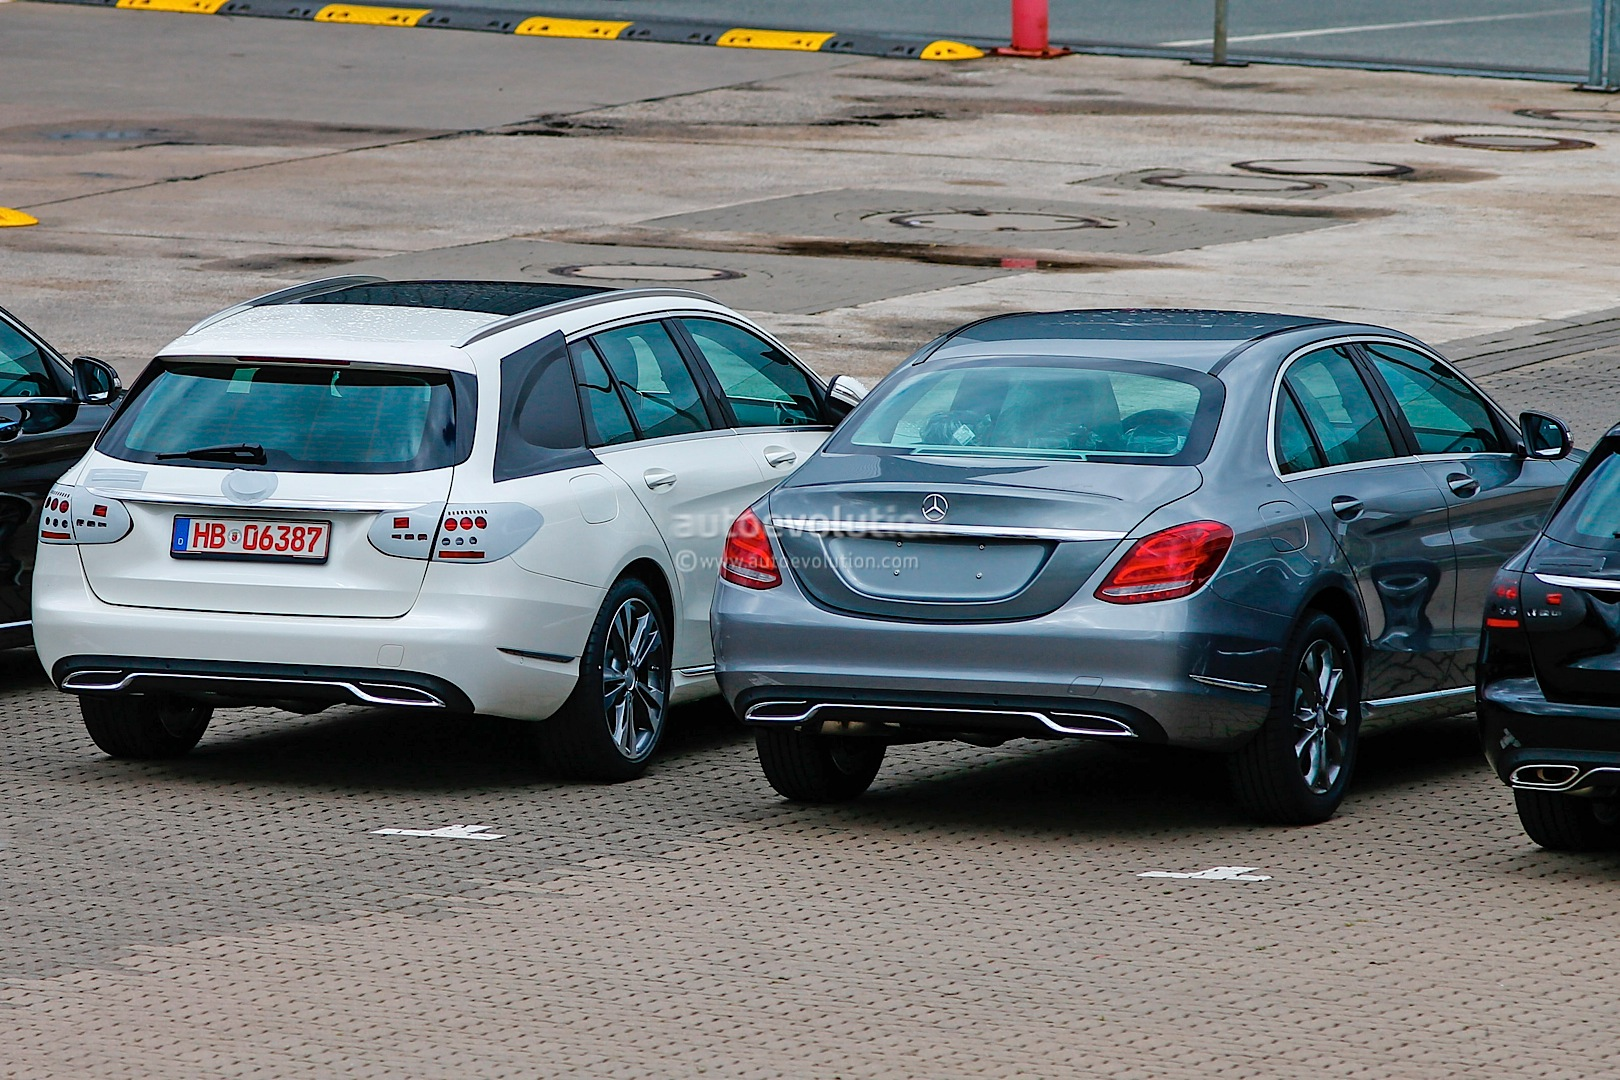 2015 mercedes benz c class wagon s205 spied next to. Black Bedroom Furniture Sets. Home Design Ideas